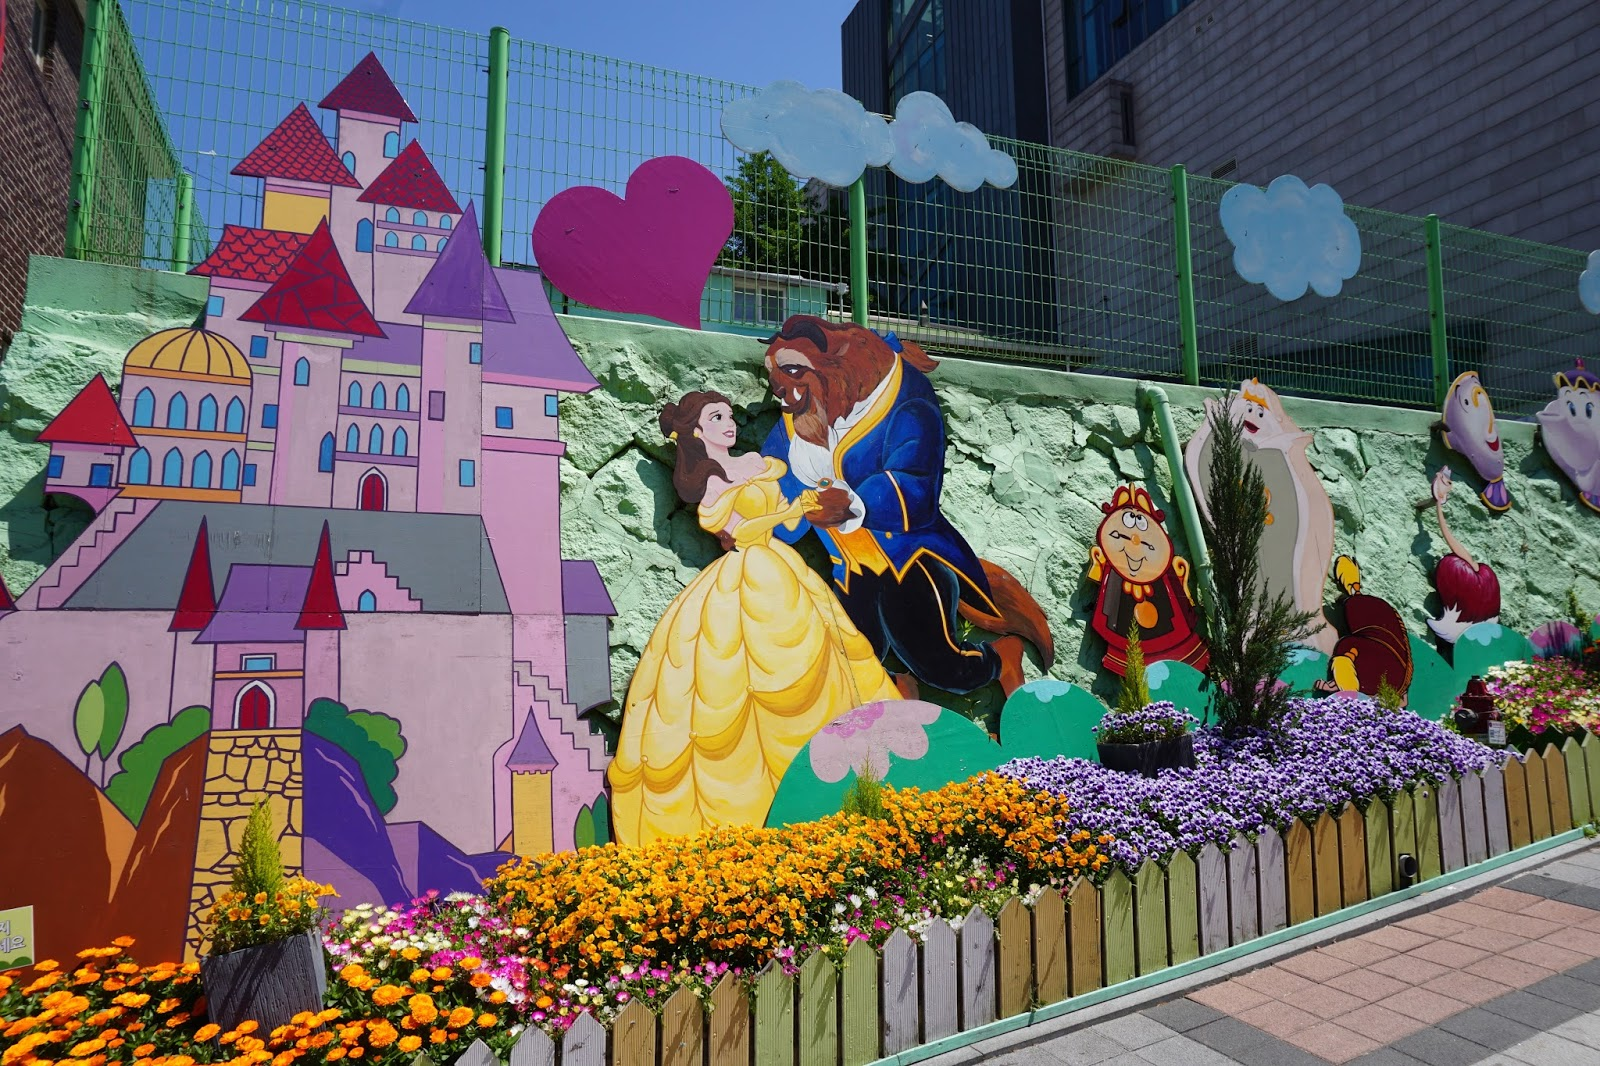 Wowkorea supporters enjoy art life best mural villages for Fairy tale mural